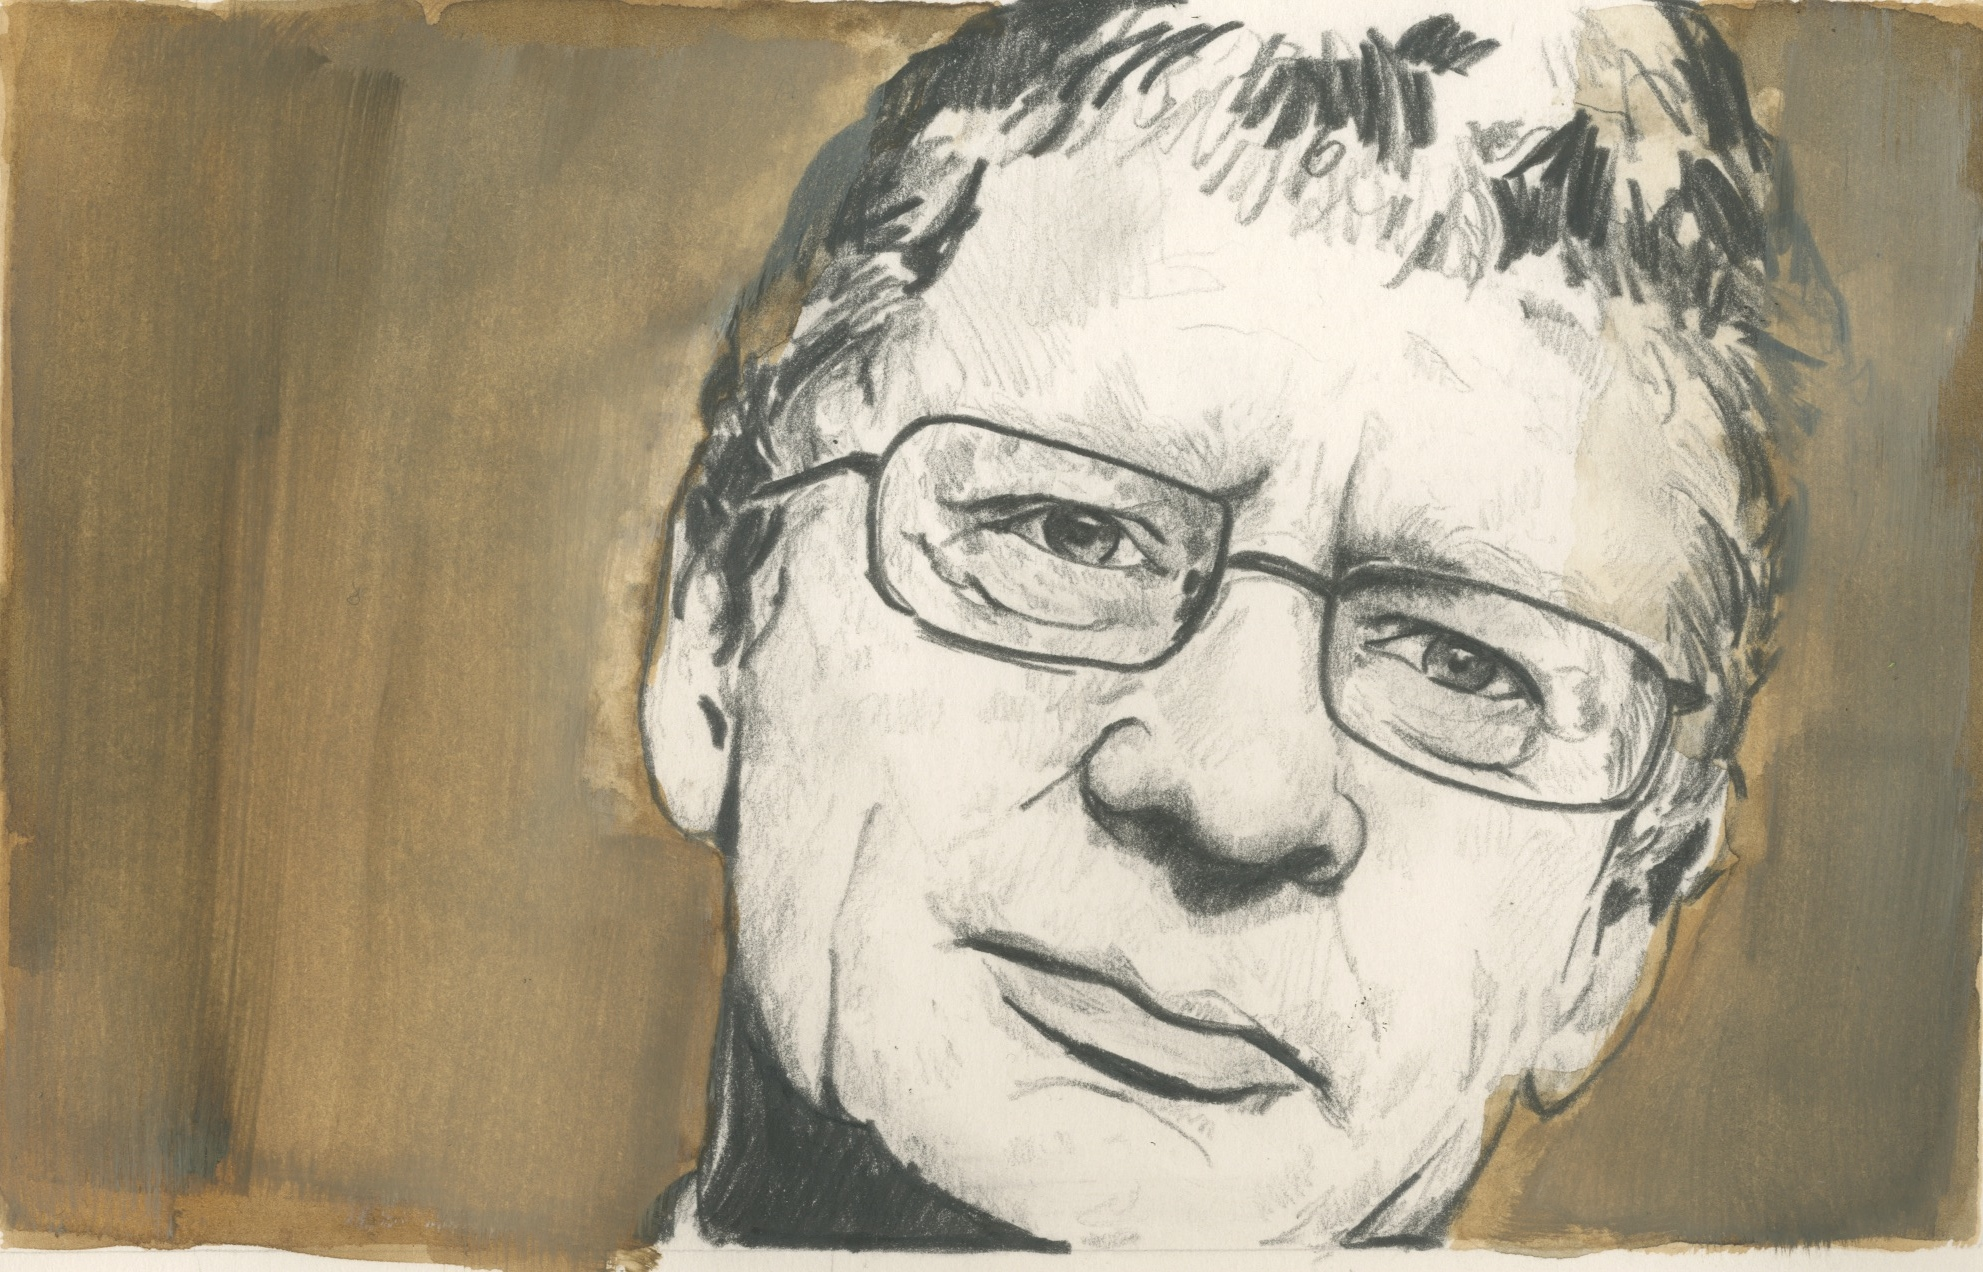 06/02/15 André Brink, the influential campaigning South African novelist and playwright, has died aged 79. Best known for his 1979 novel A Dry White Season, which focuses on the death in detention of a black activist.